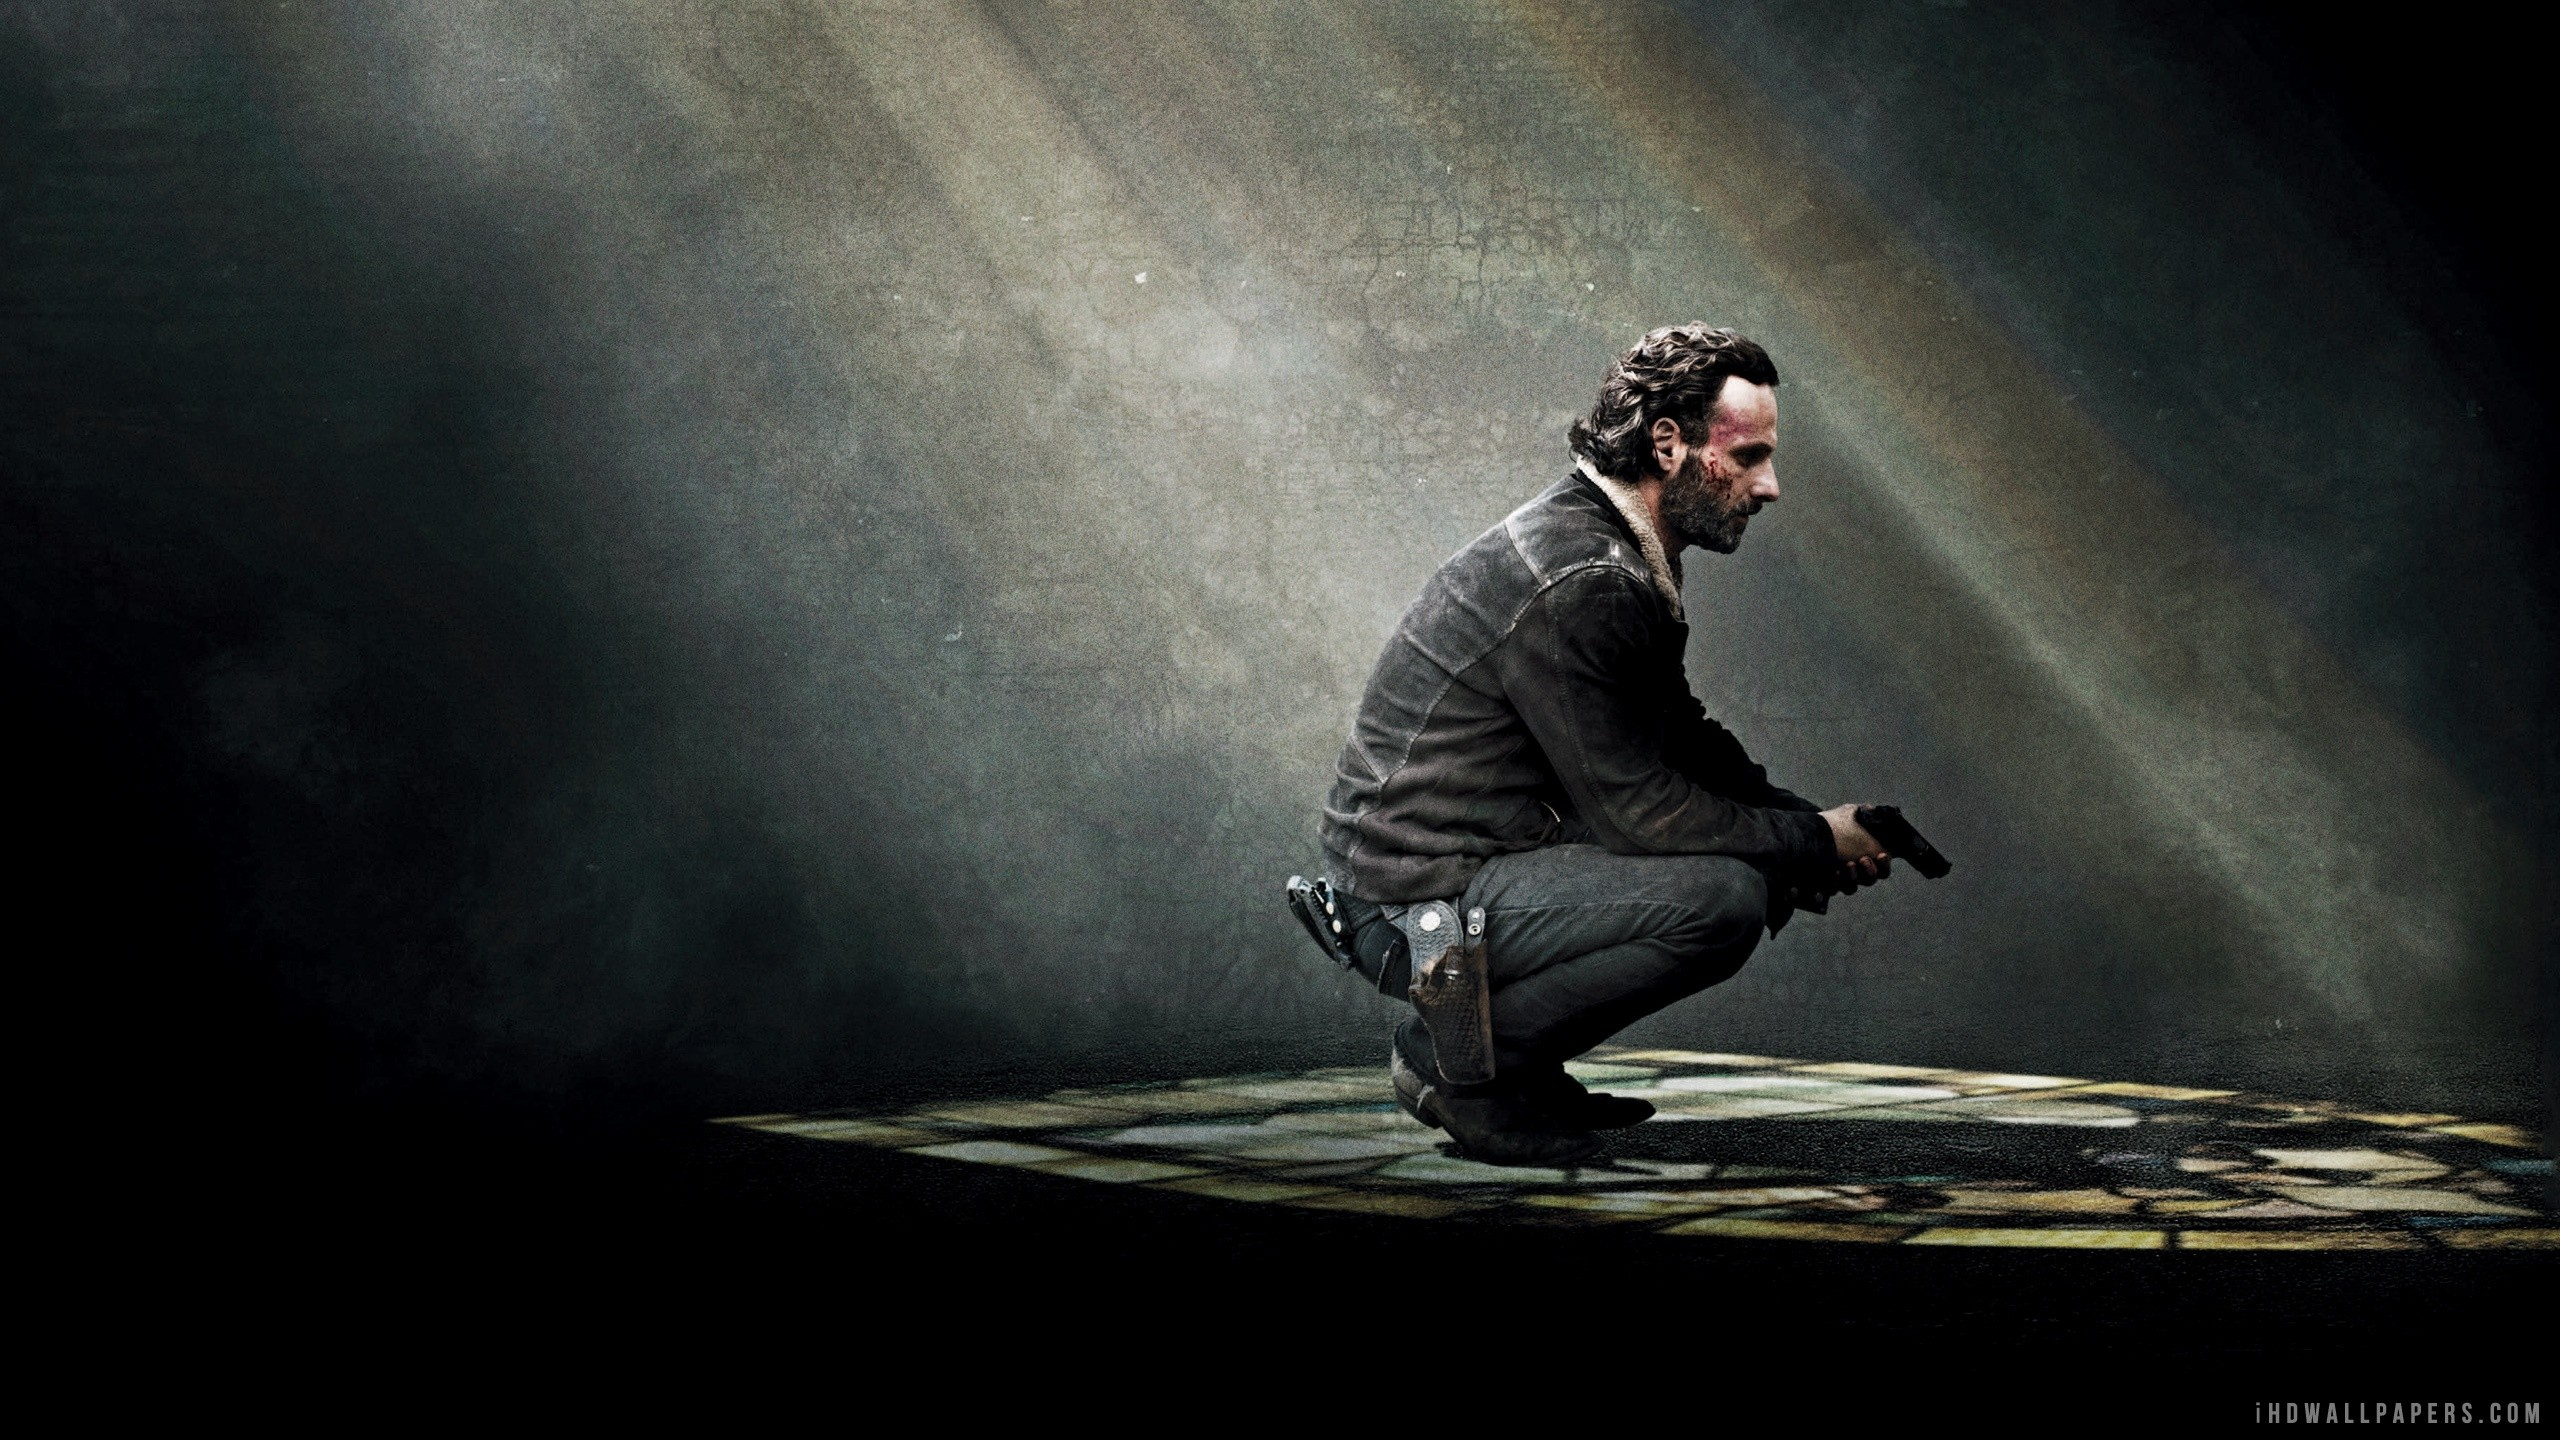 the walking dead wallpaper hd (73+ images)